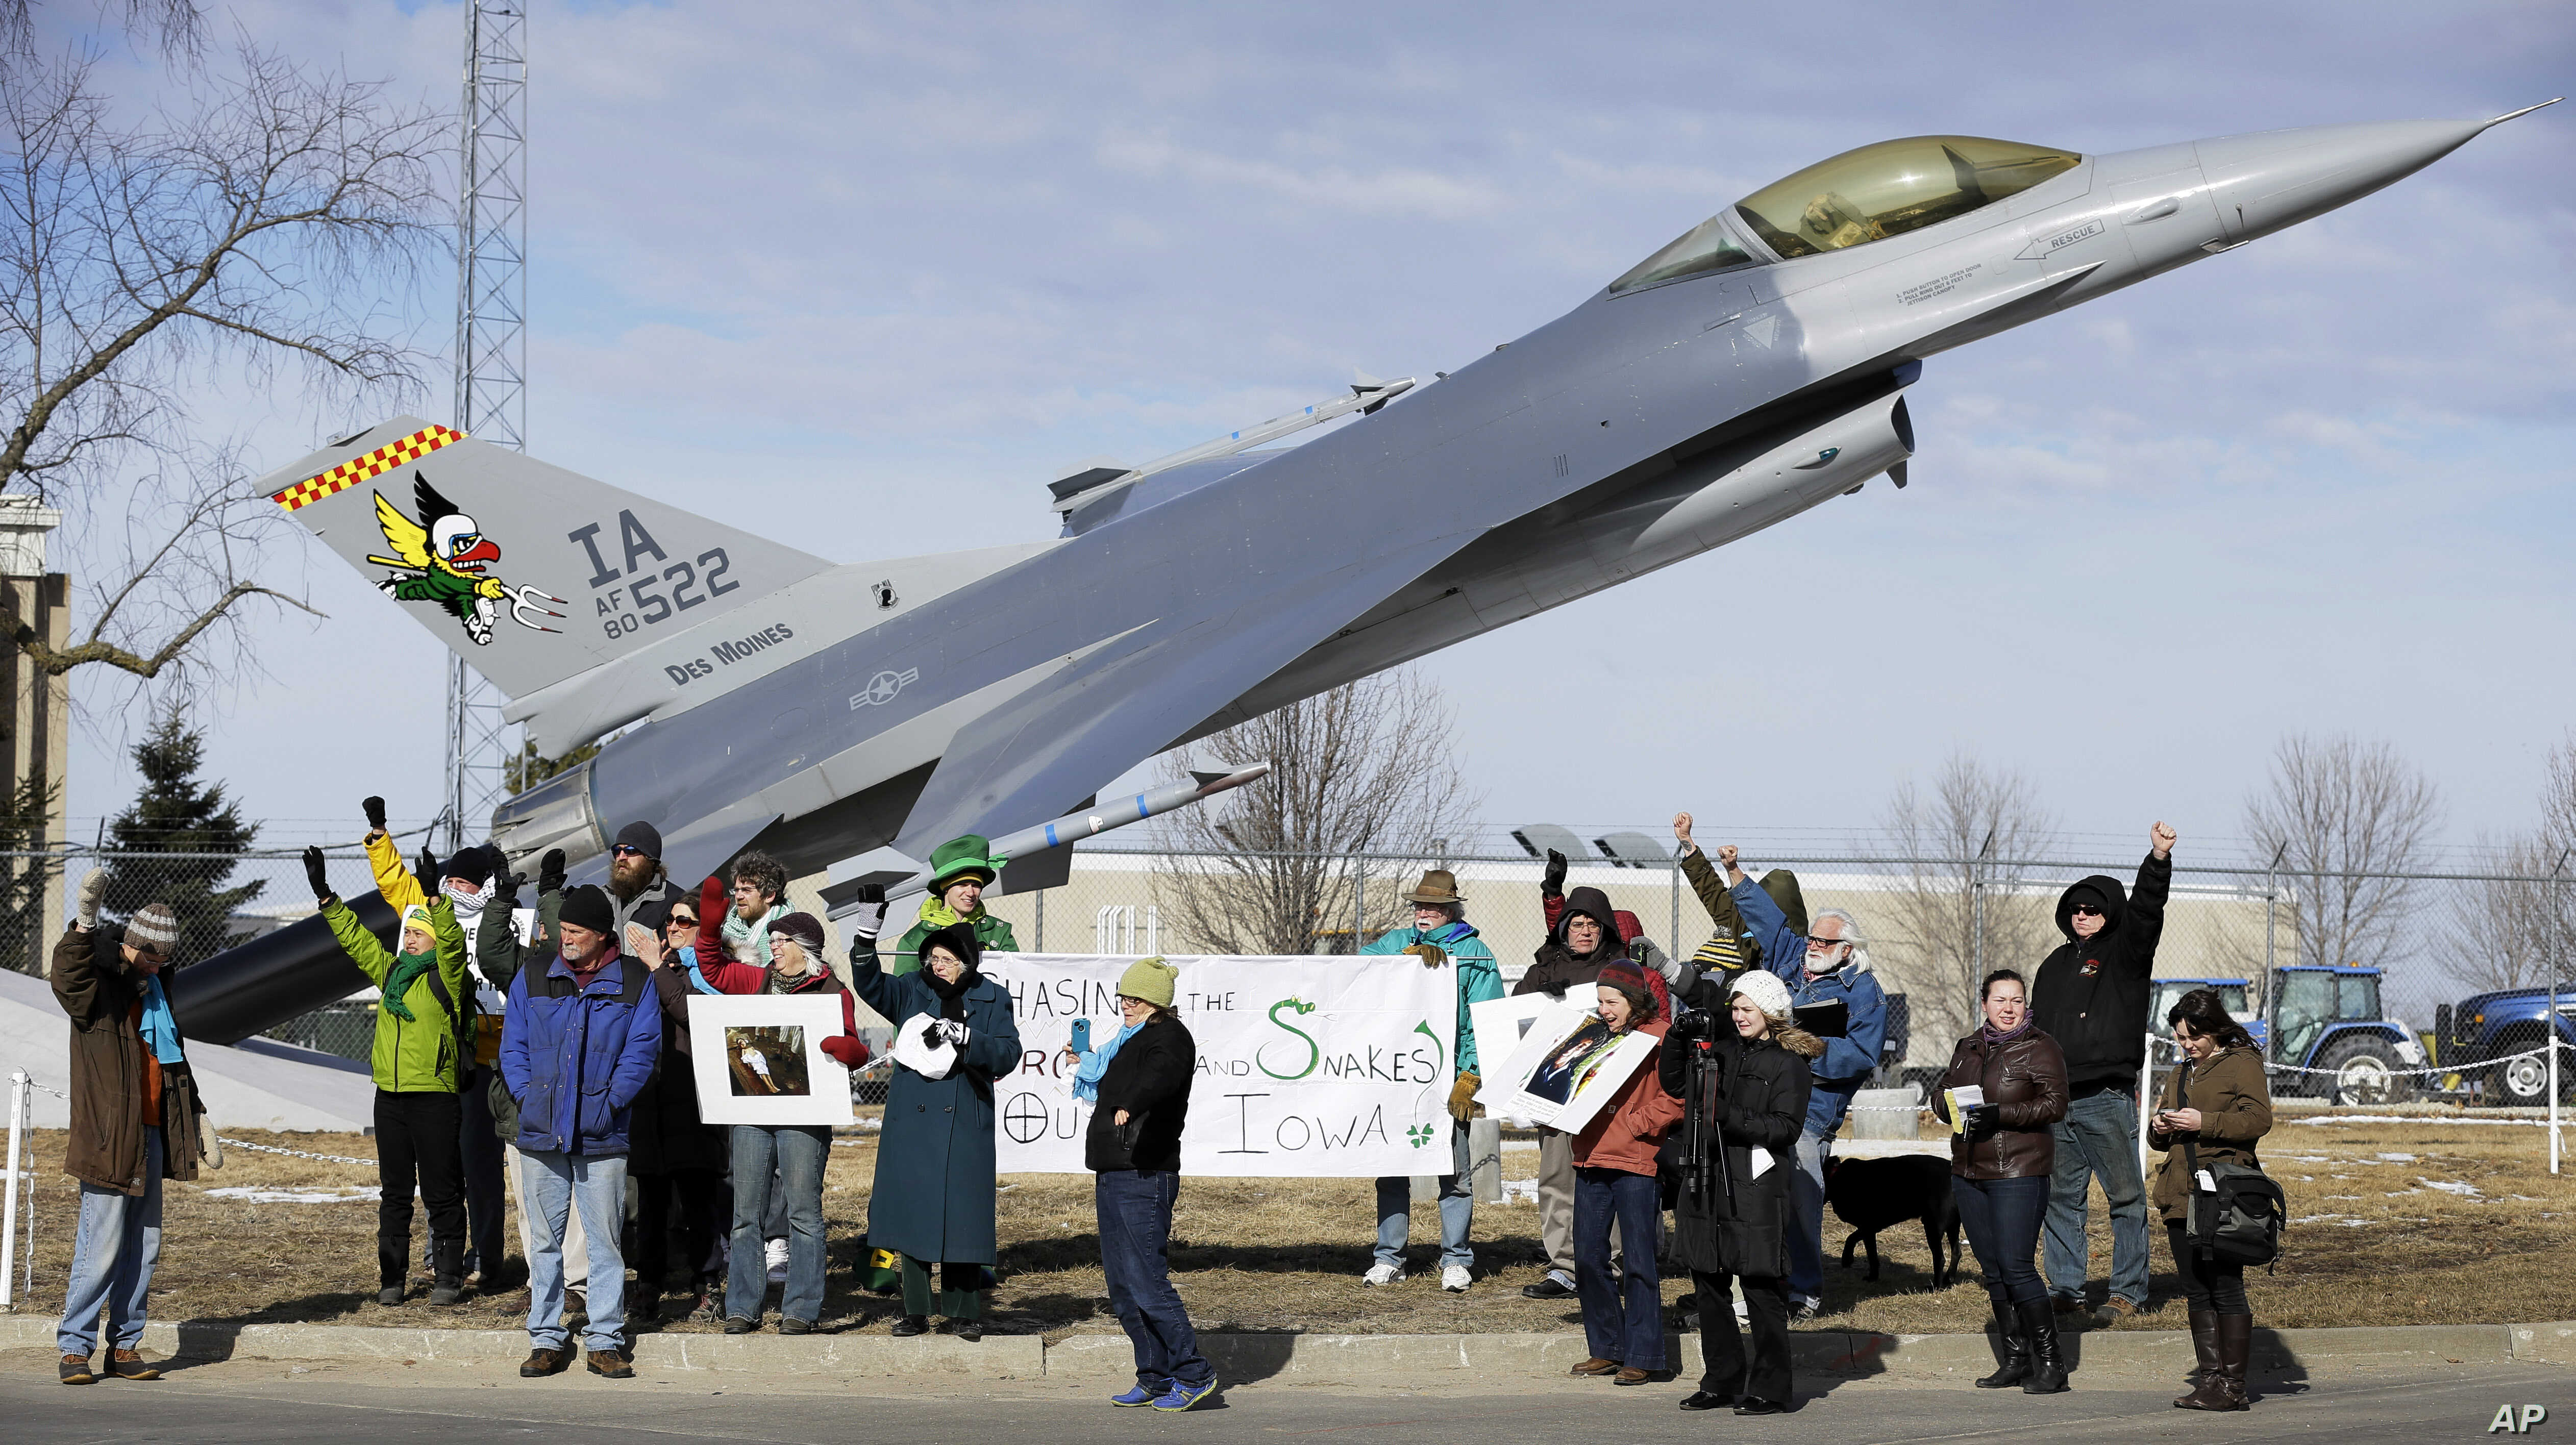 FILE - Protesters rally outside the Iowa Air National Guard base in Des Moines, Iowa, March 17, 2014. Seven people who were rallying against the use of drones to carry out military strikes were arrested. On May 13 of that year, diplomats in Geneva be...